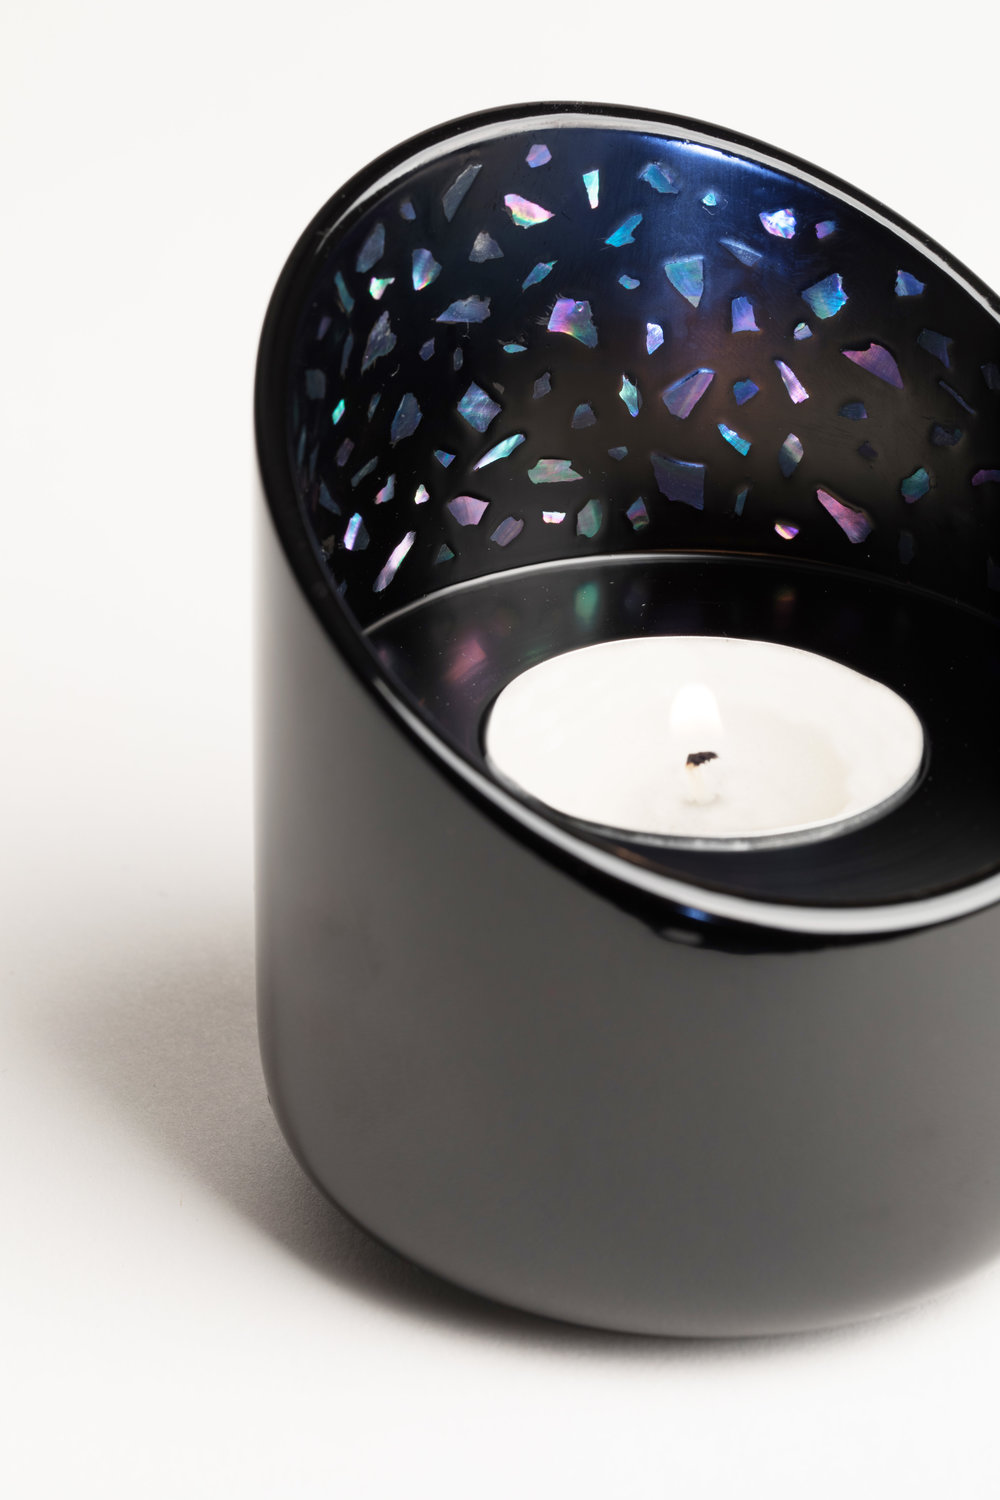 Atelier Takumi - Orion Candle holder medium_ Crafted by Raden Musashigawa designed by VoisinGuillemin 1.jpg